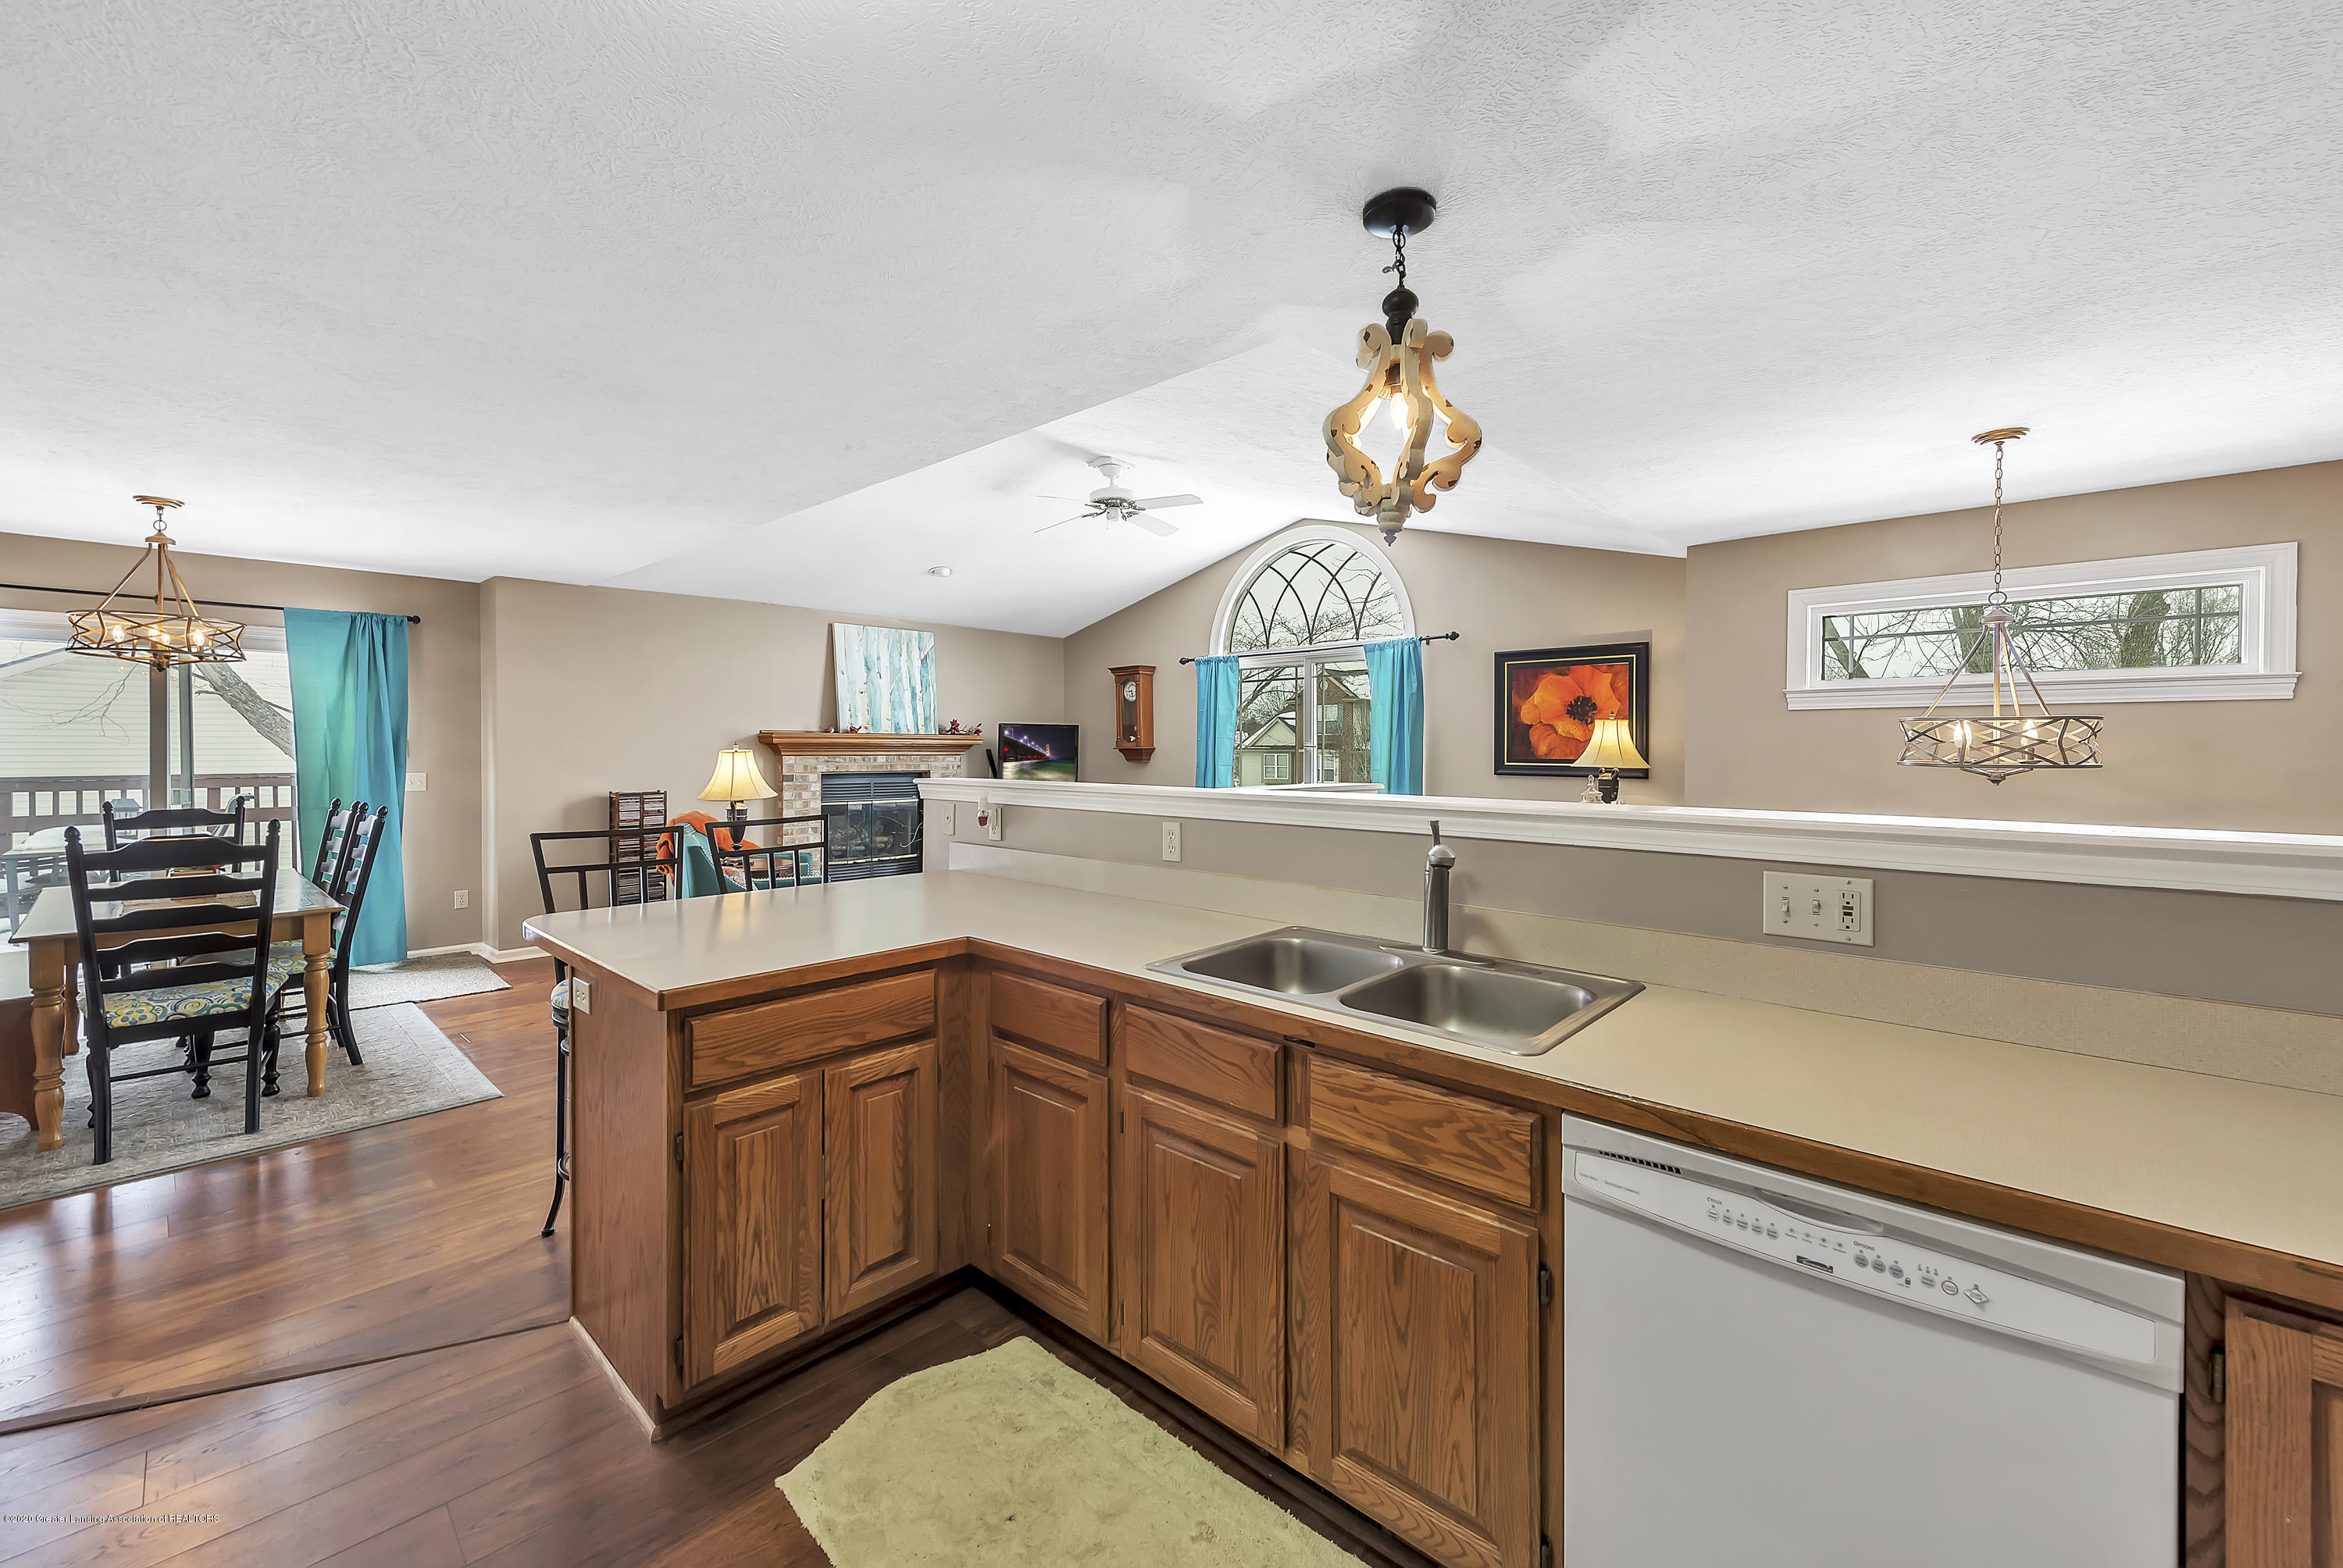 2450 Featherstone Dr - 2450-Featherstone-Dr-WindowStill-Real-Es - 12